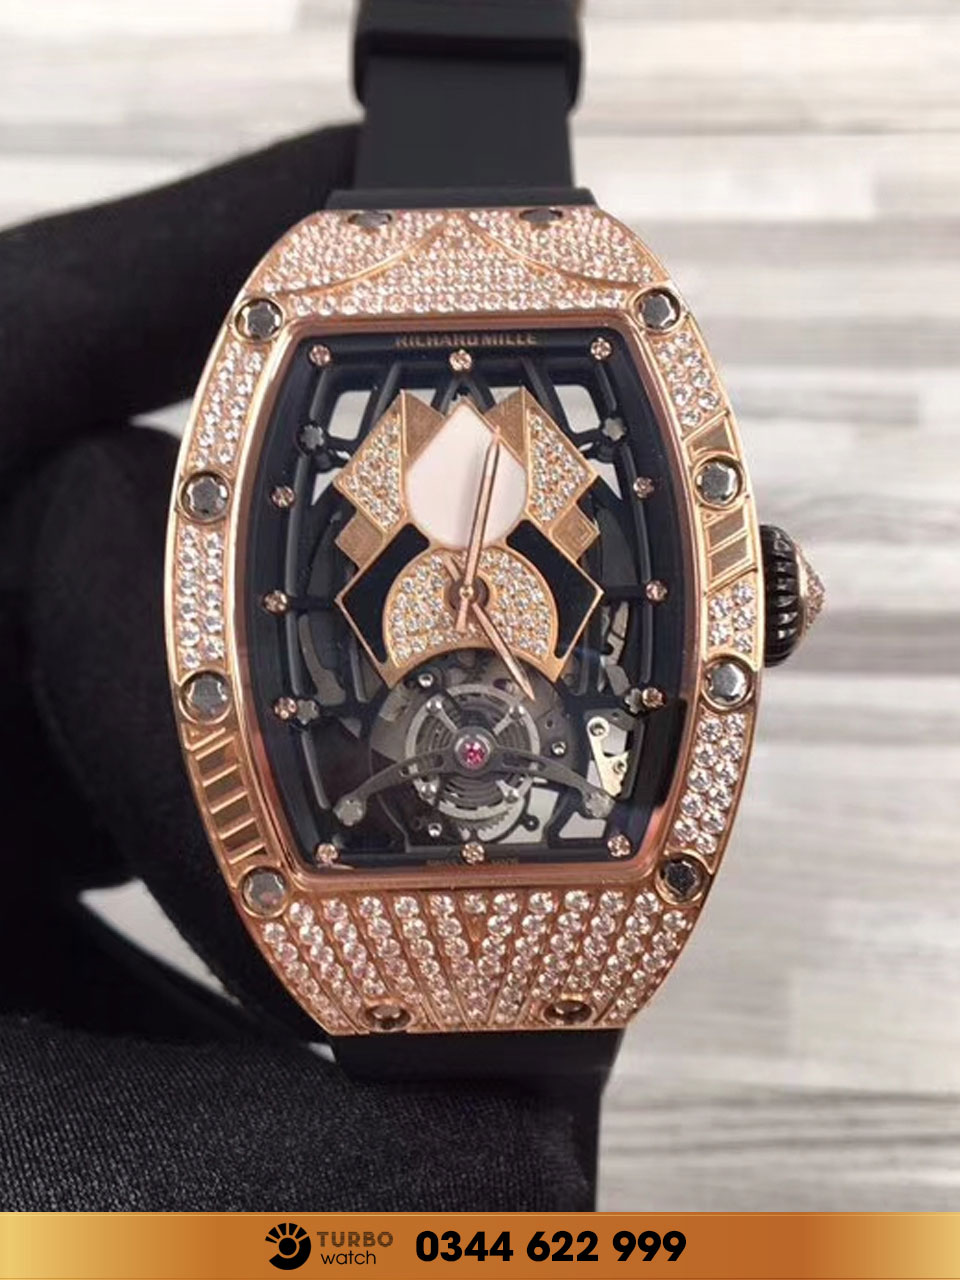 RICHARD MILLE RM 71-01 Automatic Tourbillon Talisman for Women FAKE 1-1 CAO CẤP